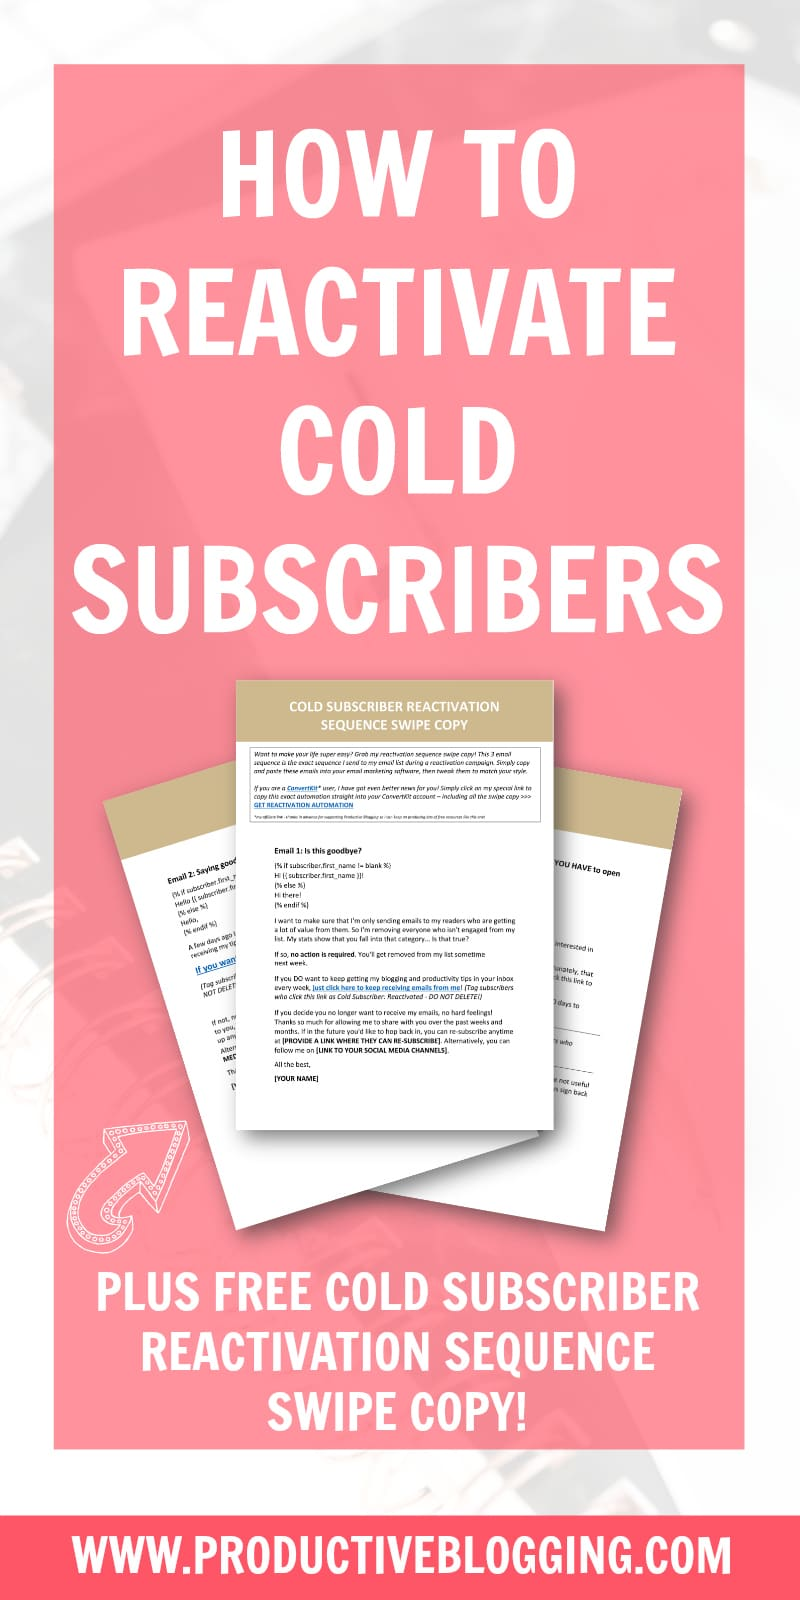 Instead of simply deleting cold subscribers, why not try and reactivate them? Here's my step by step guide to running a reactivation campaign for your cold subscribers. #reactivatecoldsubscribers #coldsubscriberreactivation #reactivationsequence #coldsubscribers #listcleaning #emailmarketing #emaillist #emailmarketingtips #listbuilding #subscribers #convertkit #blogging #bloggers #bloggingtips #productiveblogging #blogsmarter #blogsmarternotharder